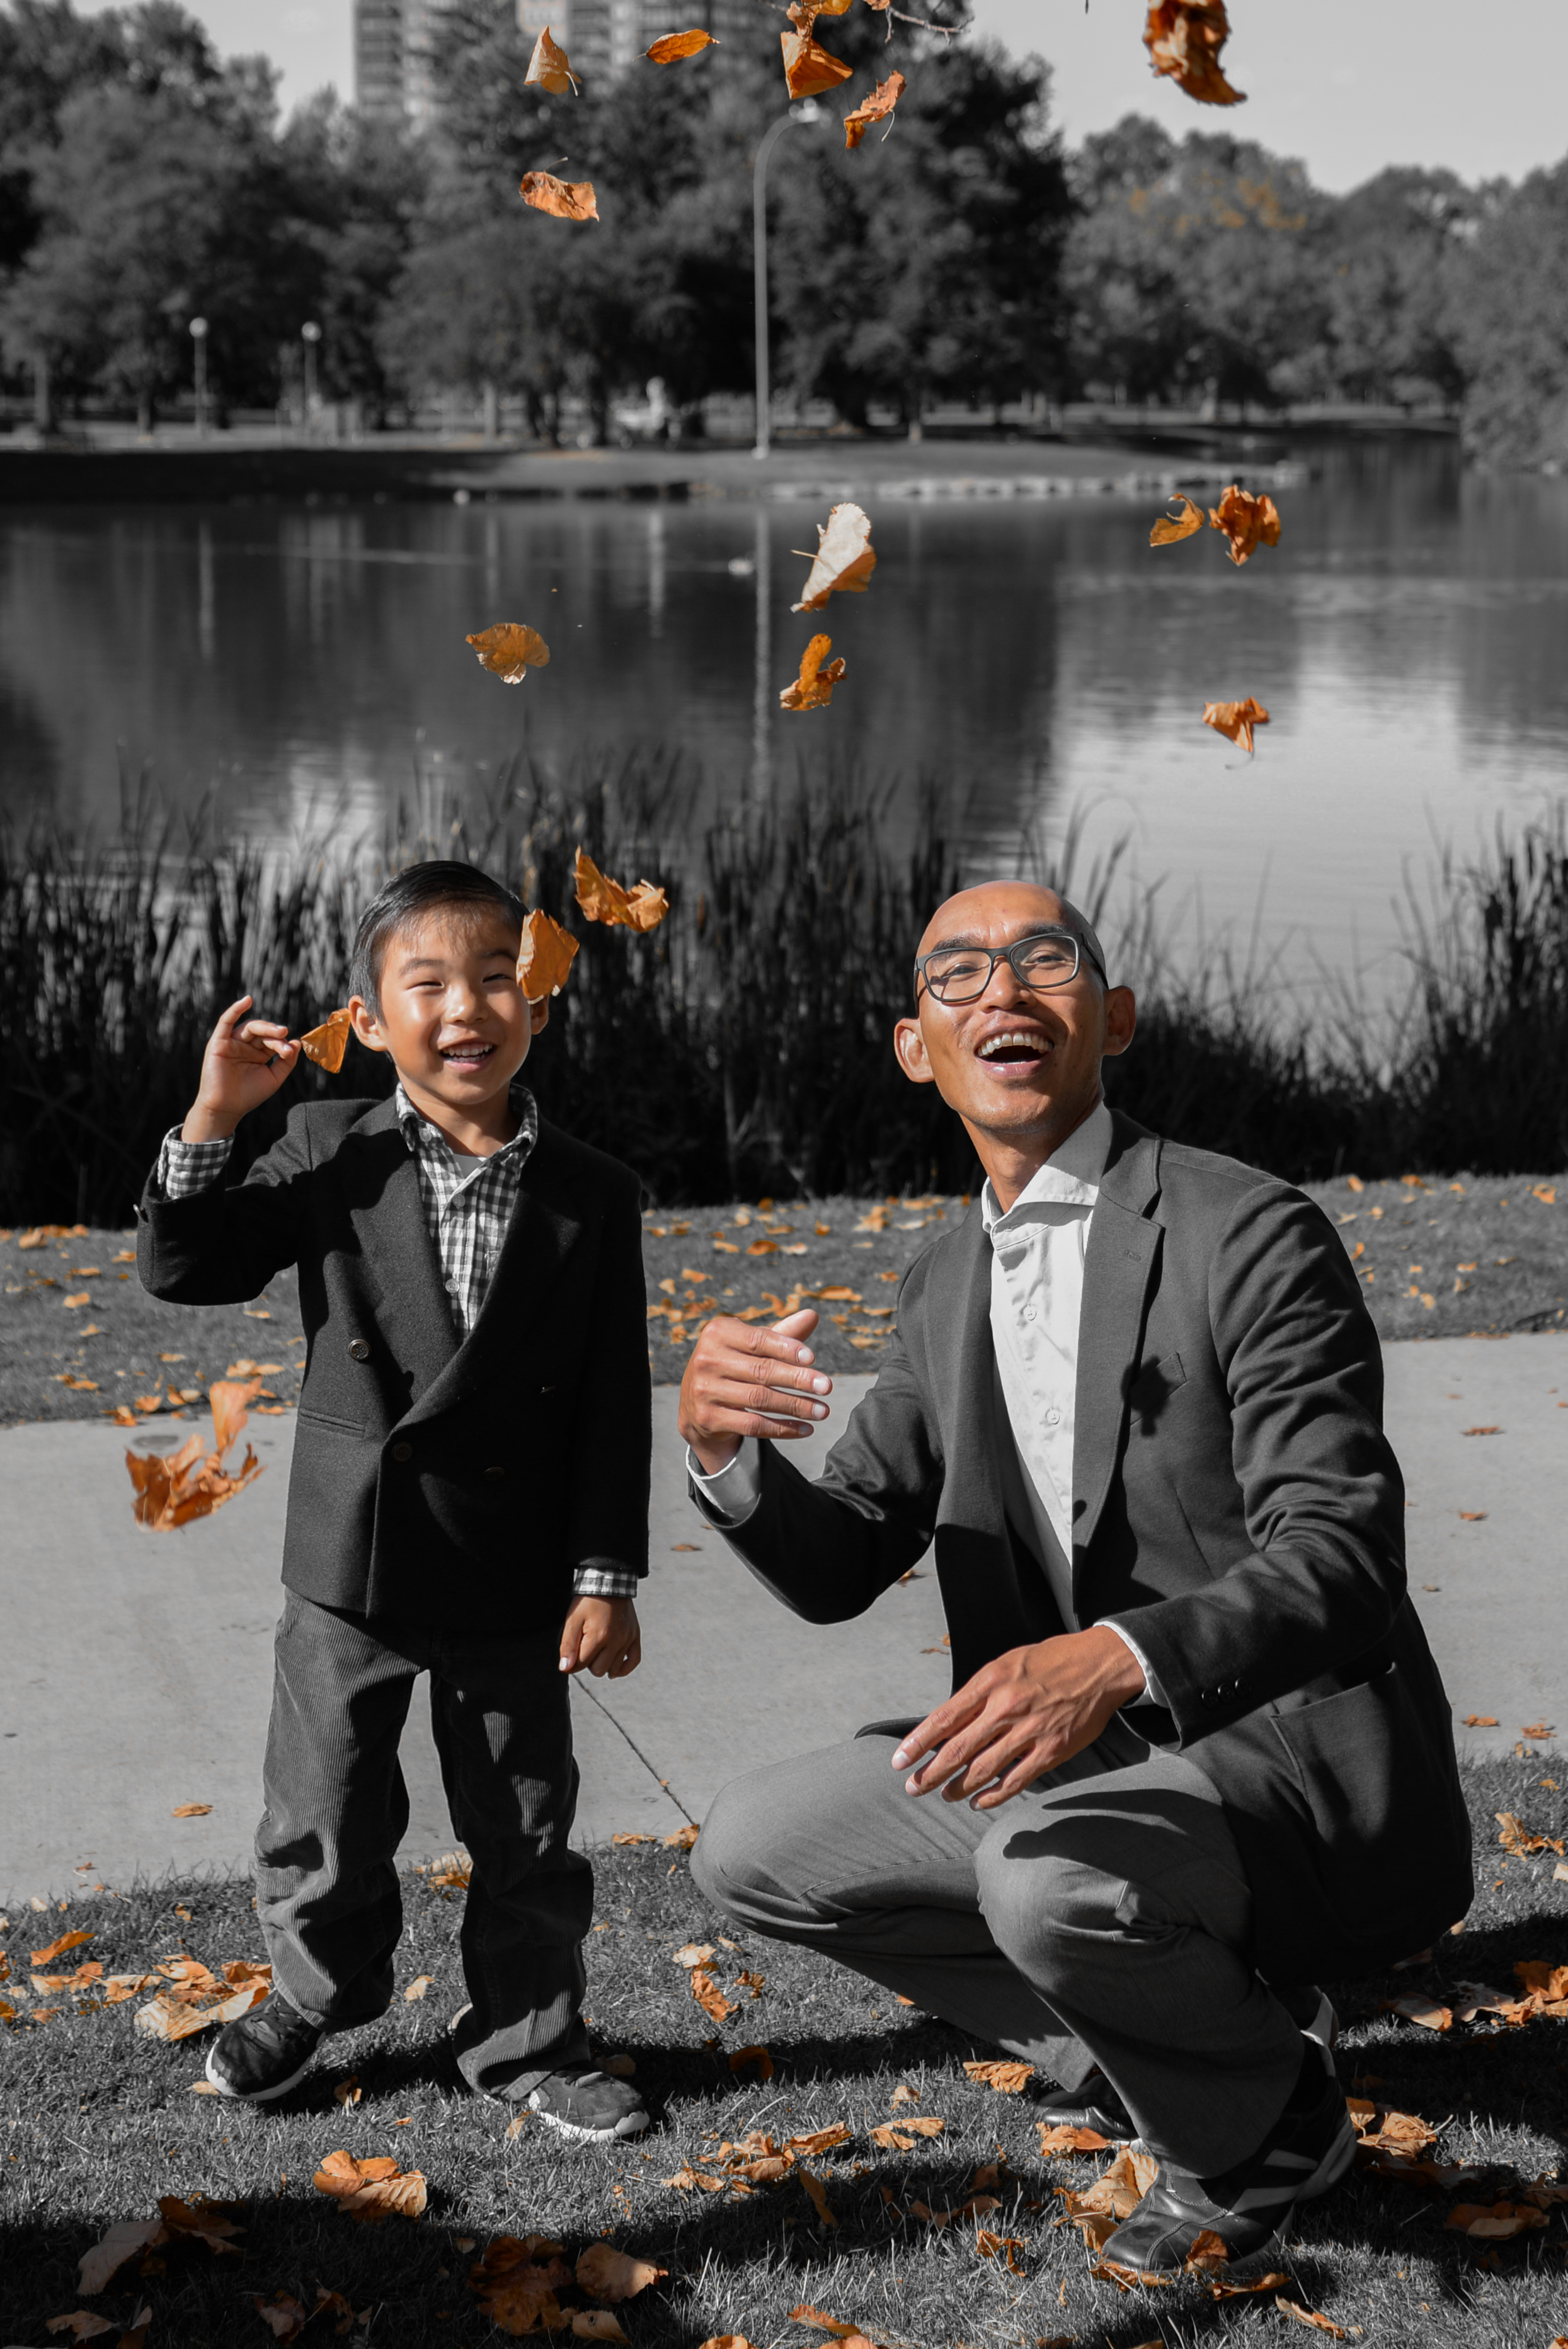 Boy and dad throw fall leaves